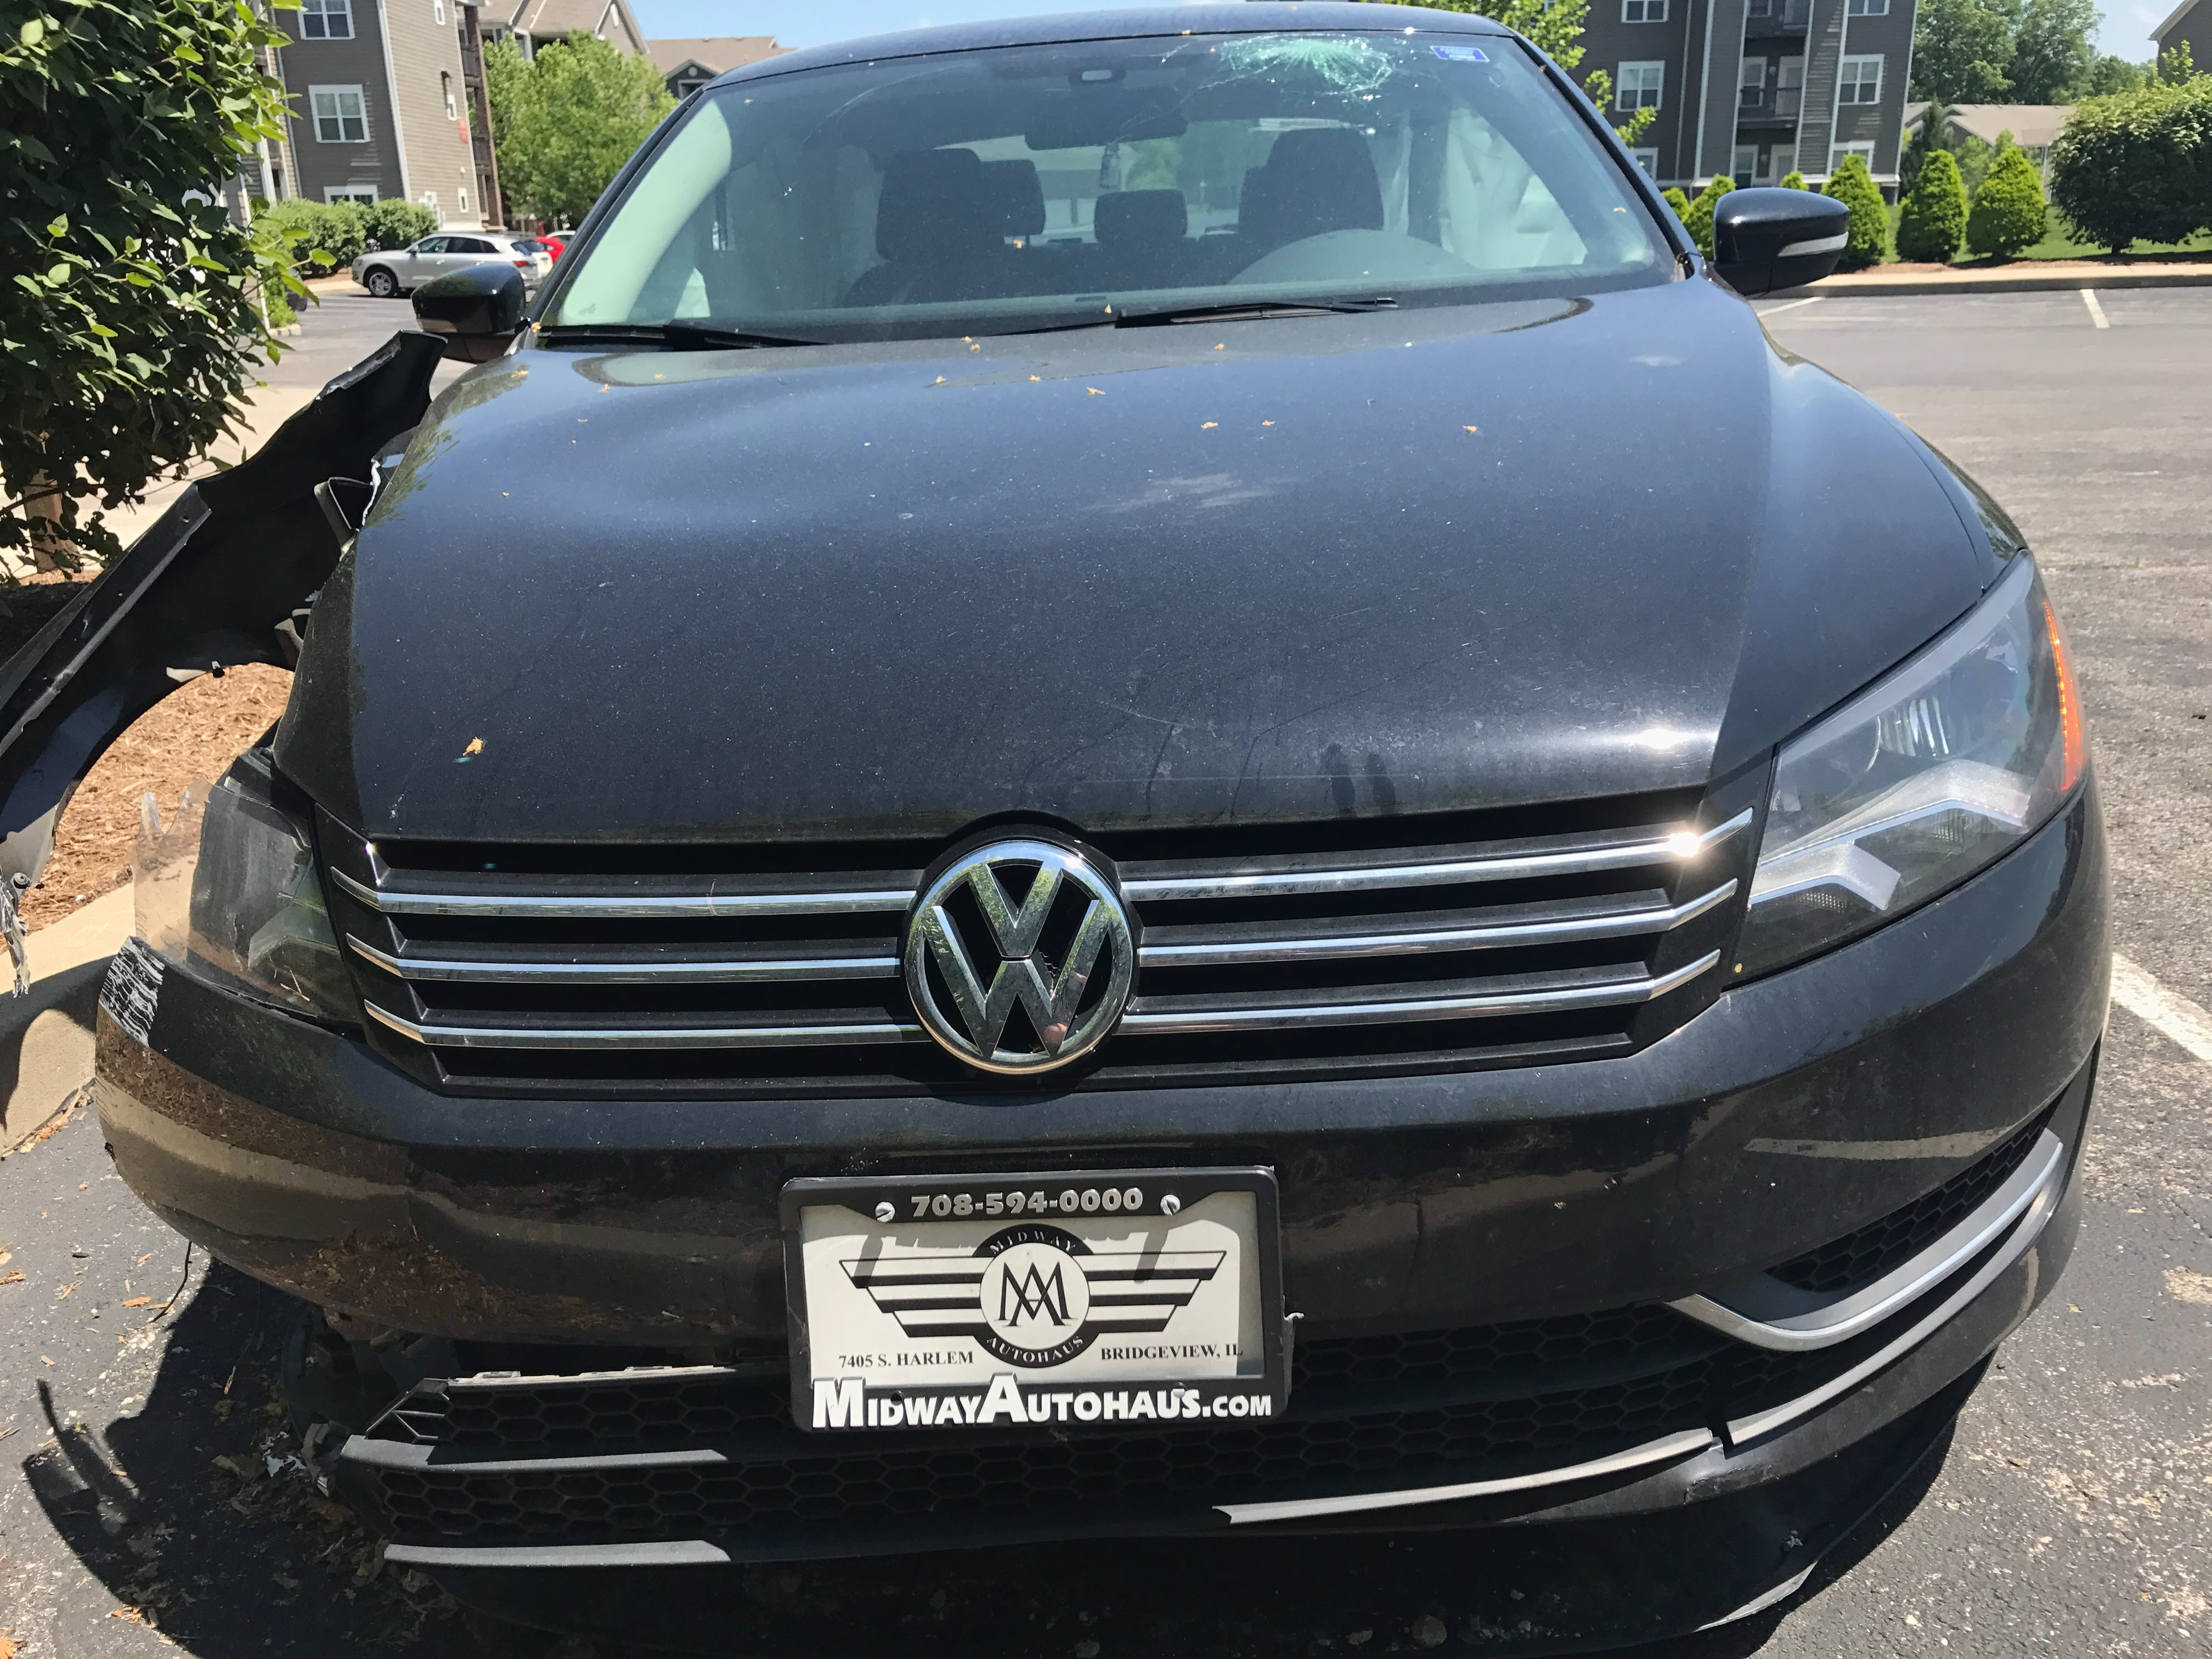 Junk 2015 Volkswagen Passat in Bloomington